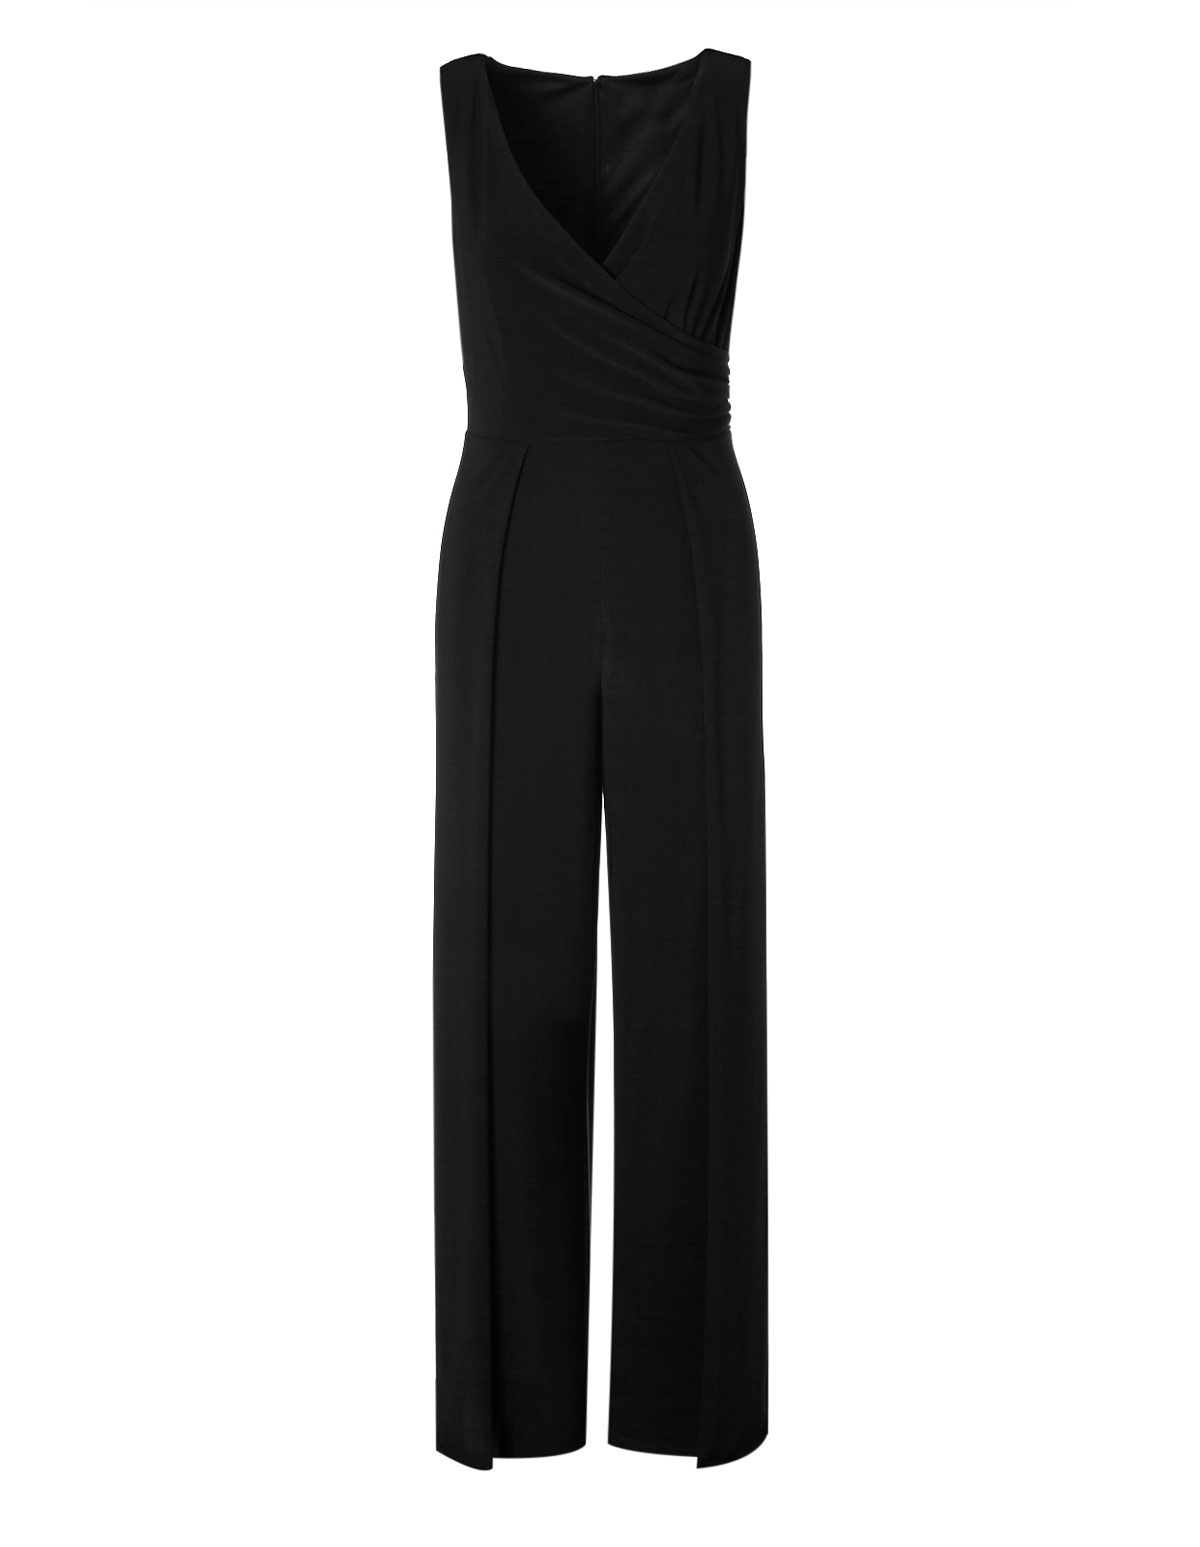 Black Jumpsuit, Black, hi-res